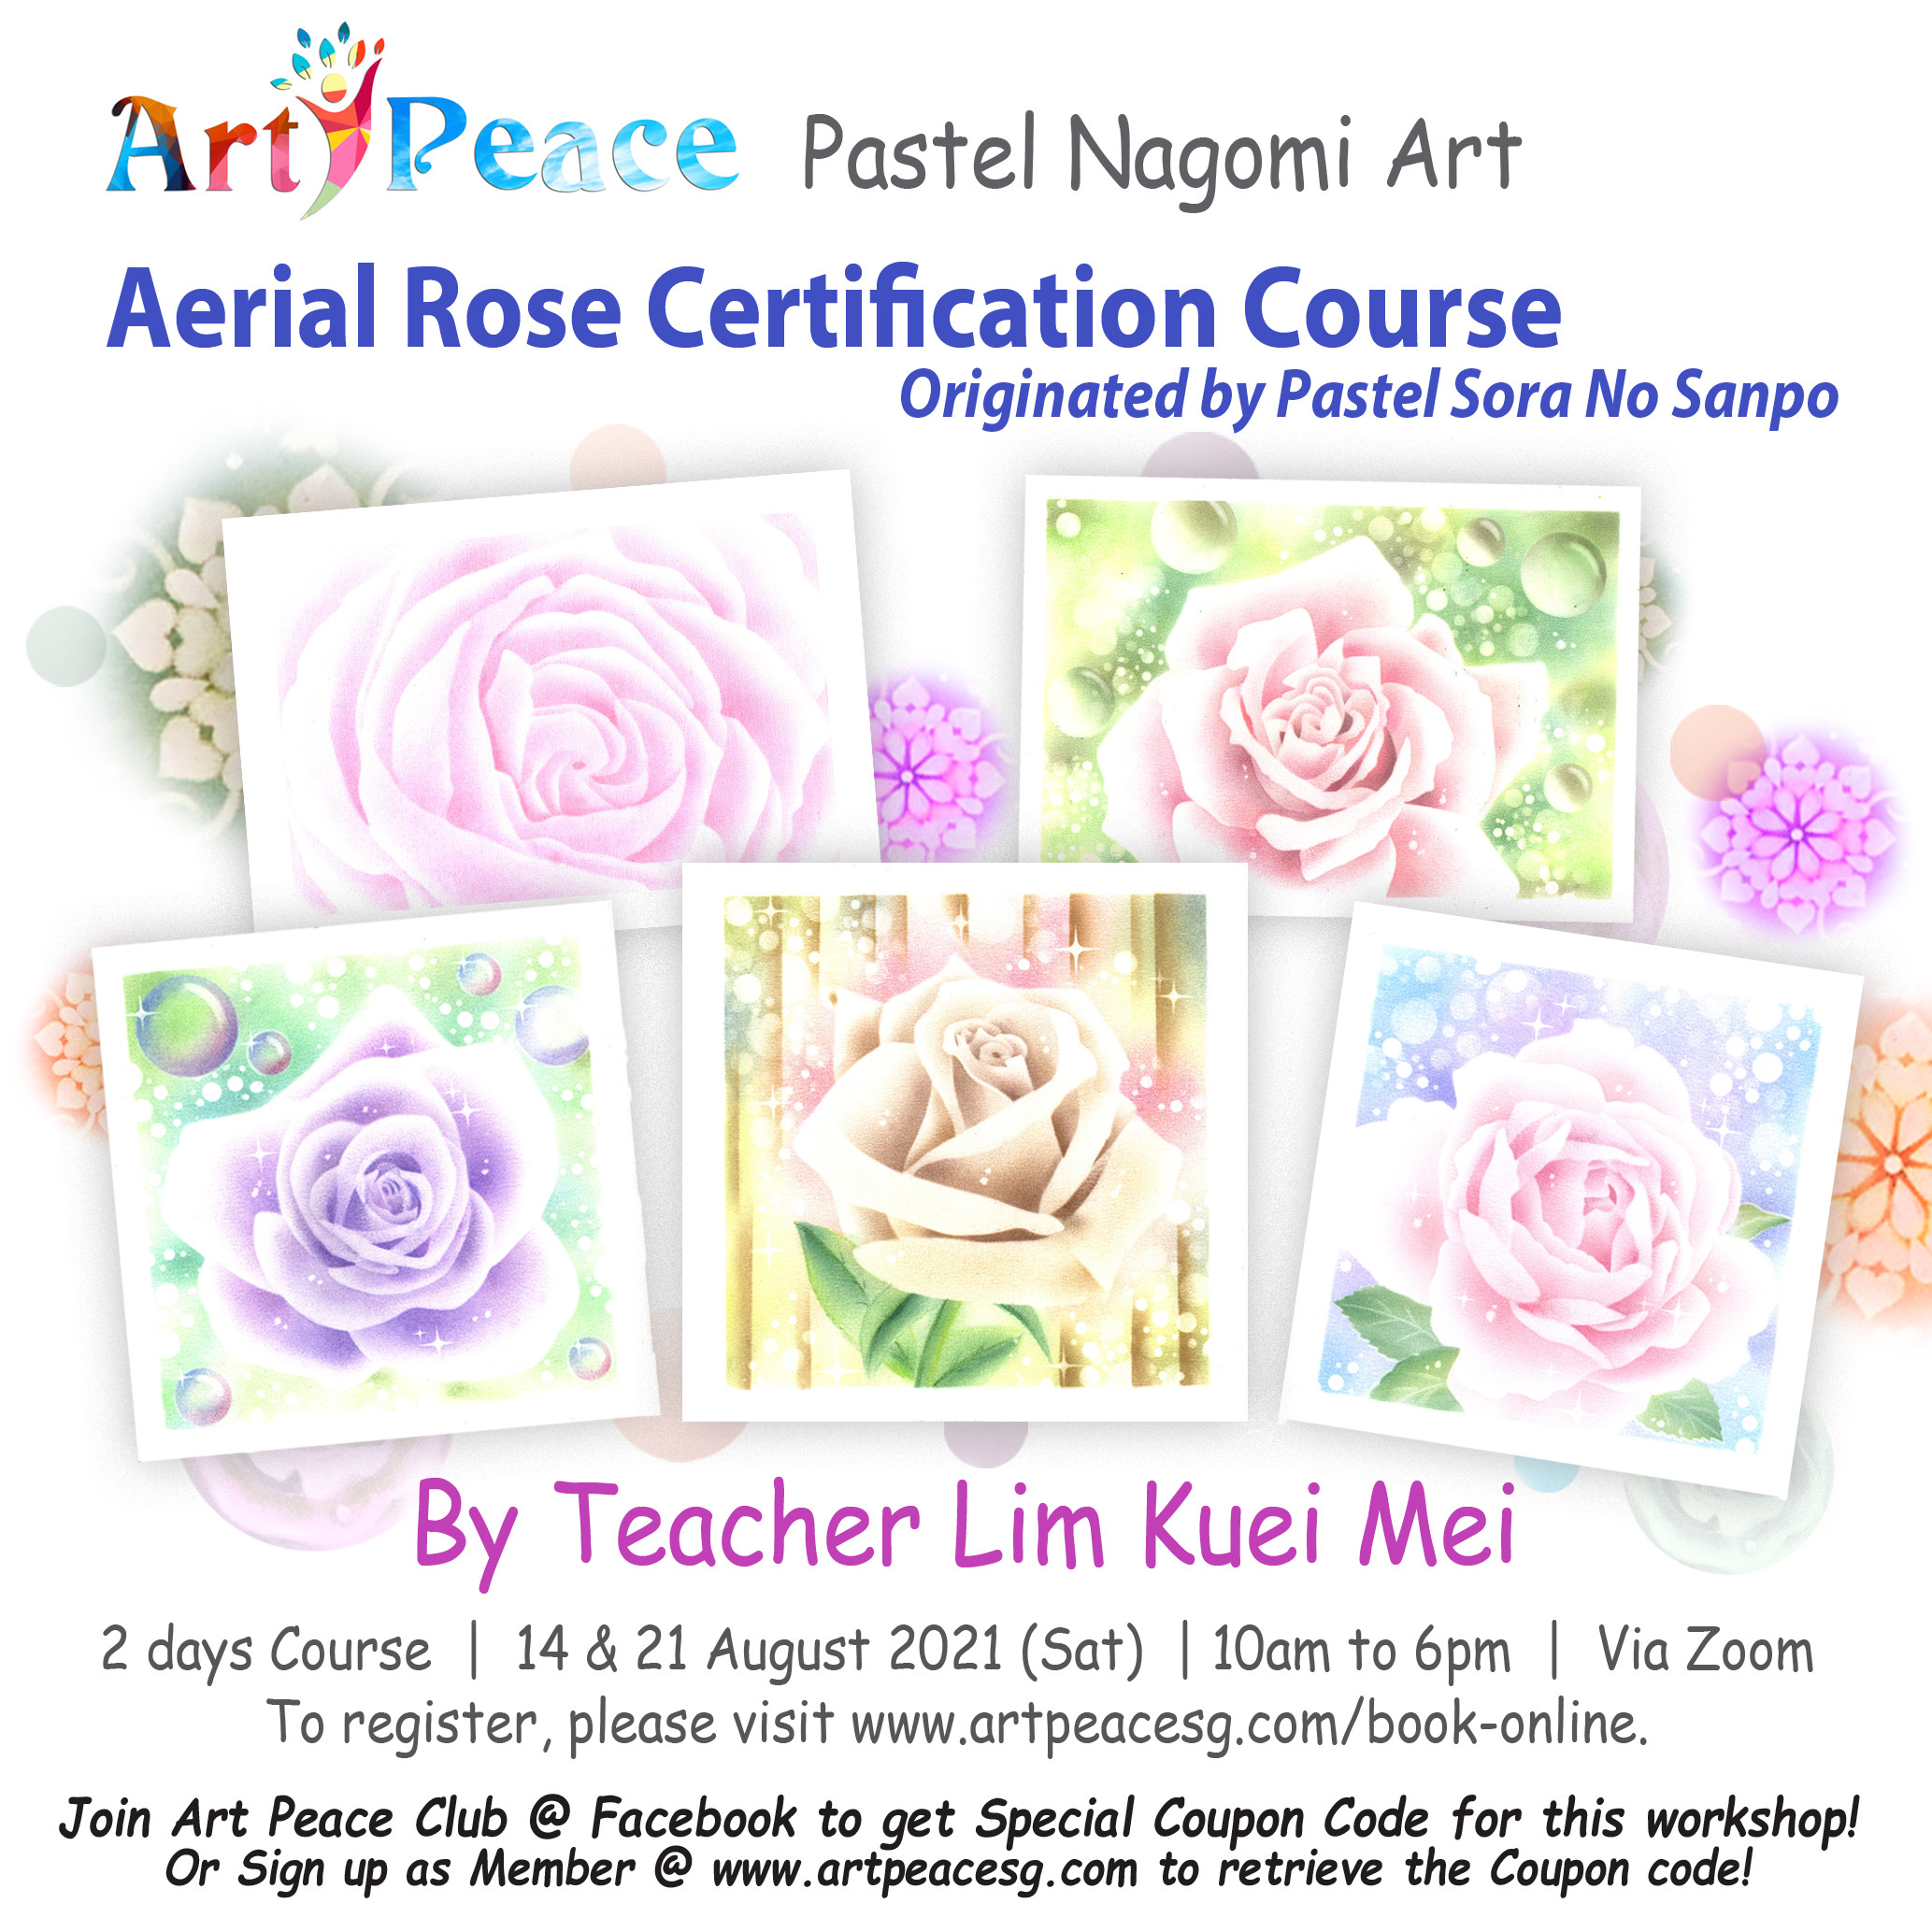 Aerial Rose Certification Course